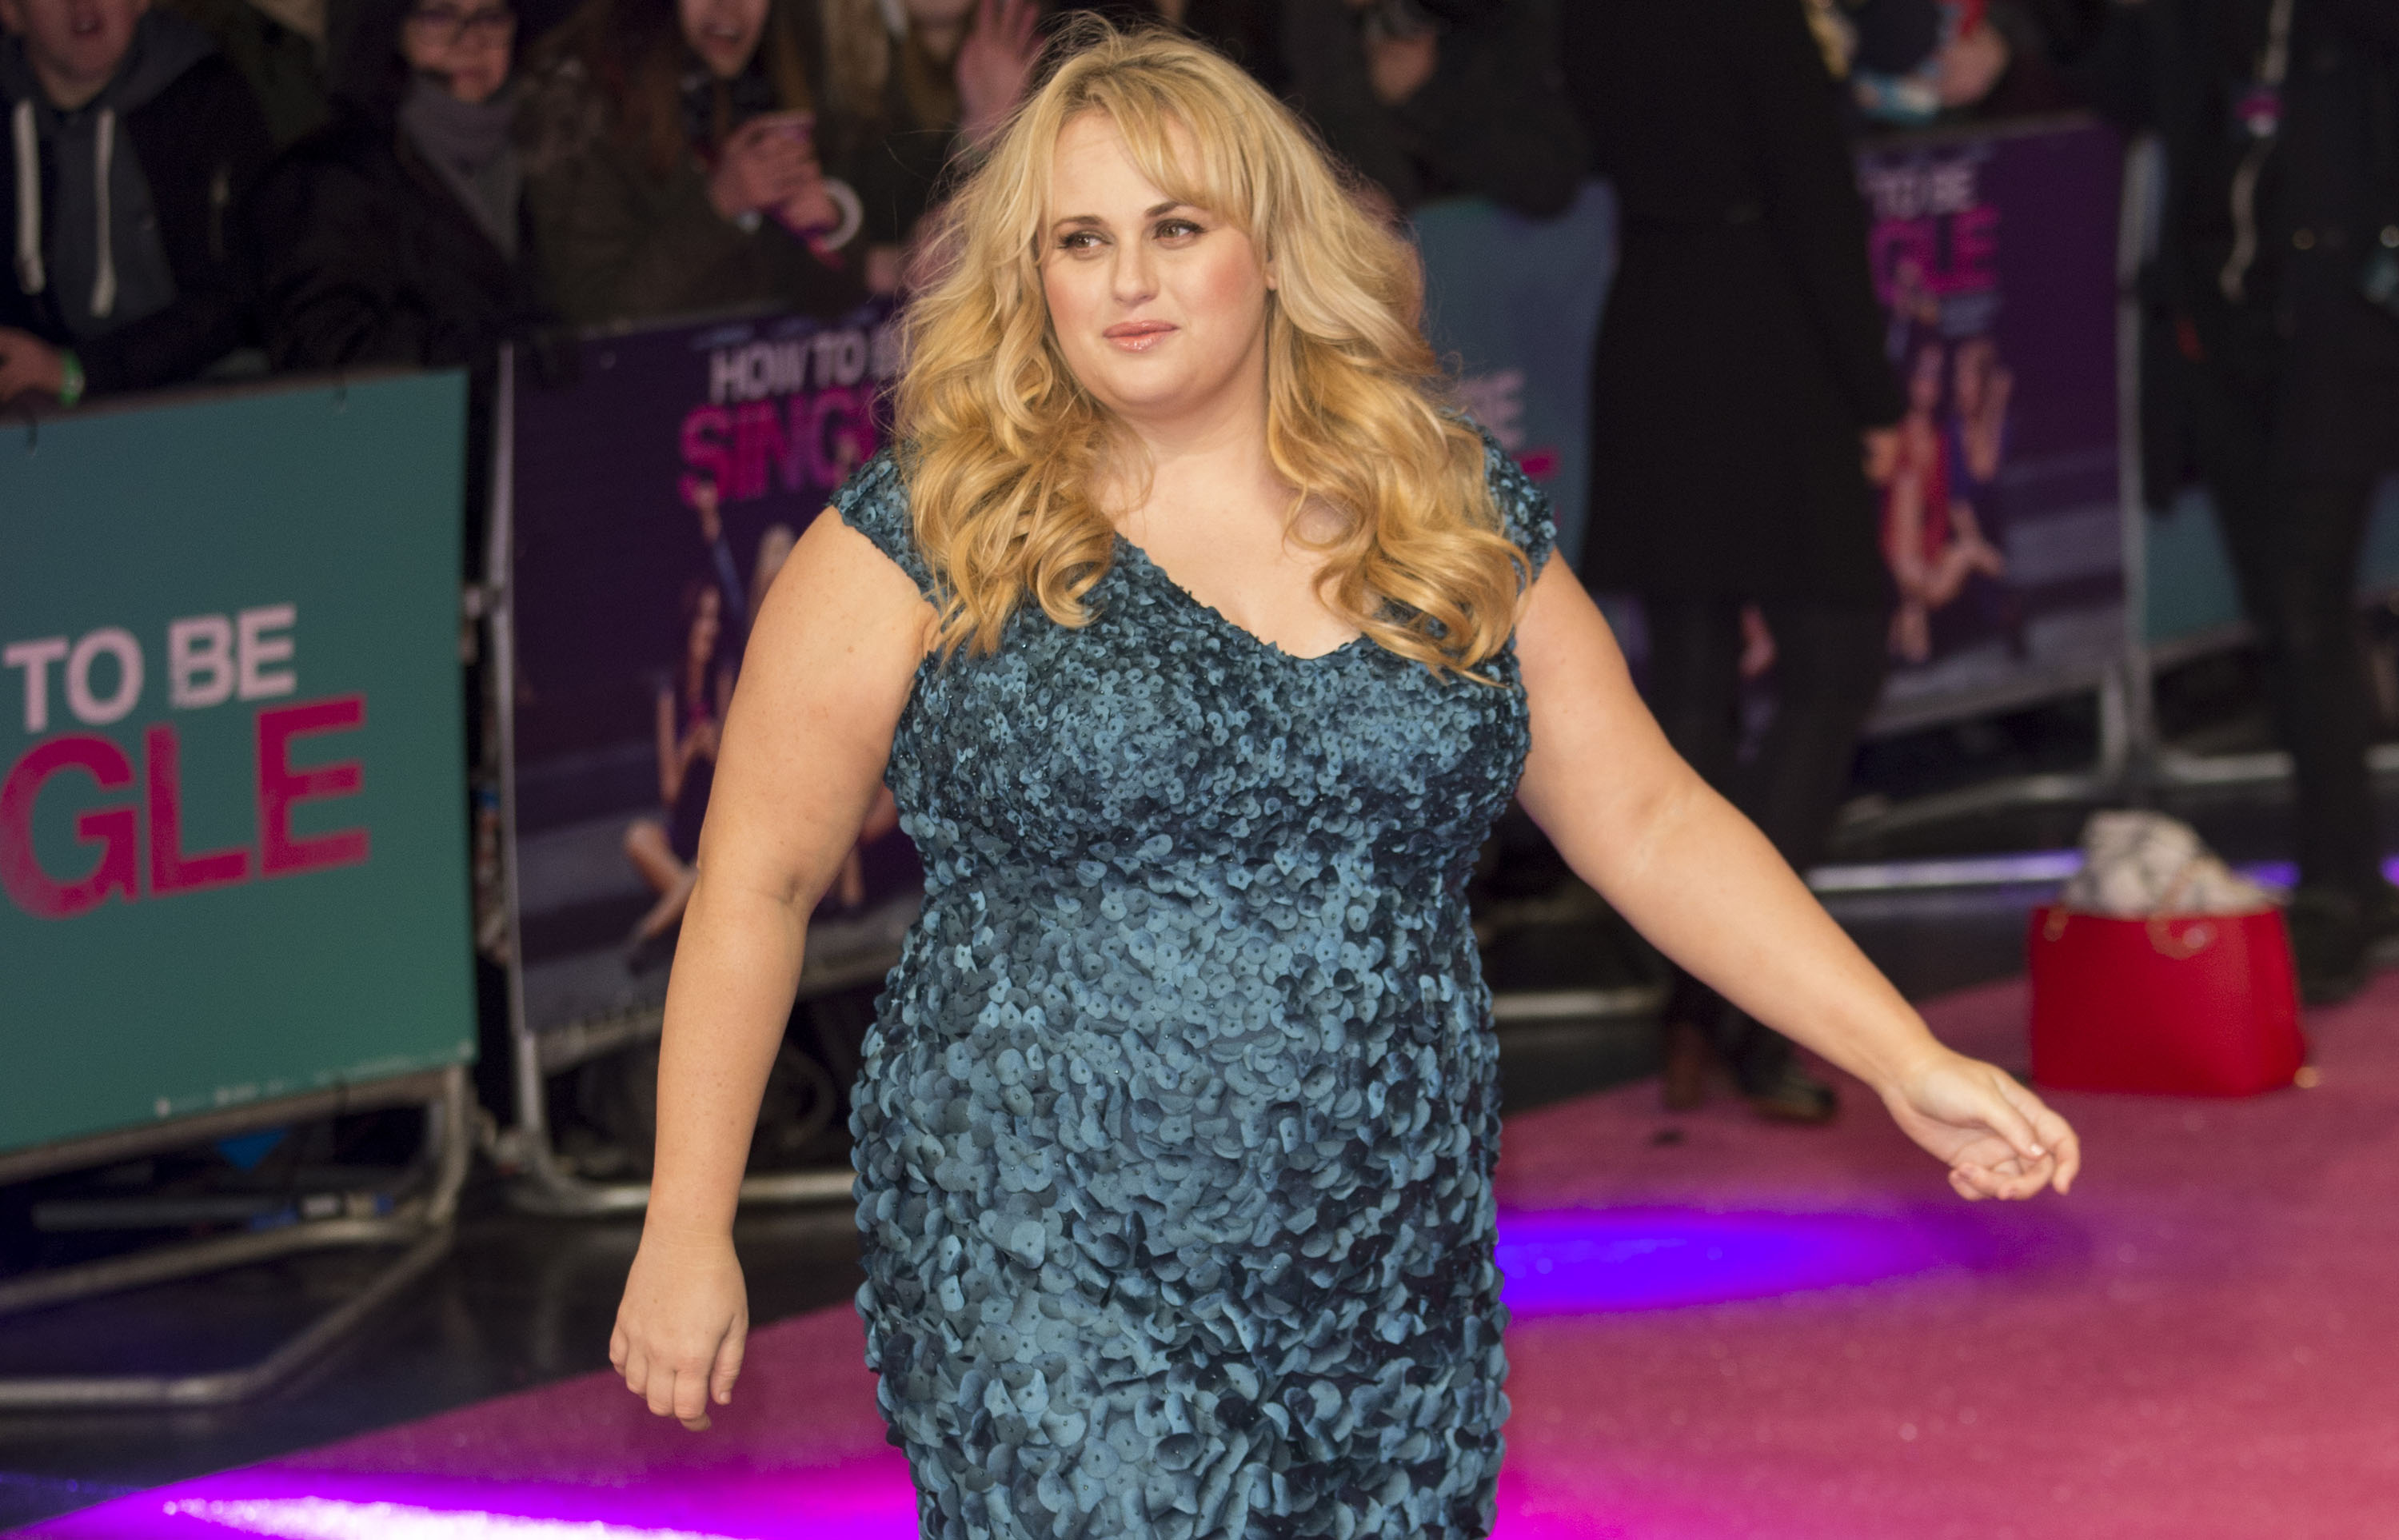 LONDON, ENGLAND - FEBRUARY 09: Rebel Wilson attends the European Premiere of 'How To Be Single' on February 9, 2016 in London, United Kingdom. (Photo by Mark Cuthbert/UK Press via Getty Images)